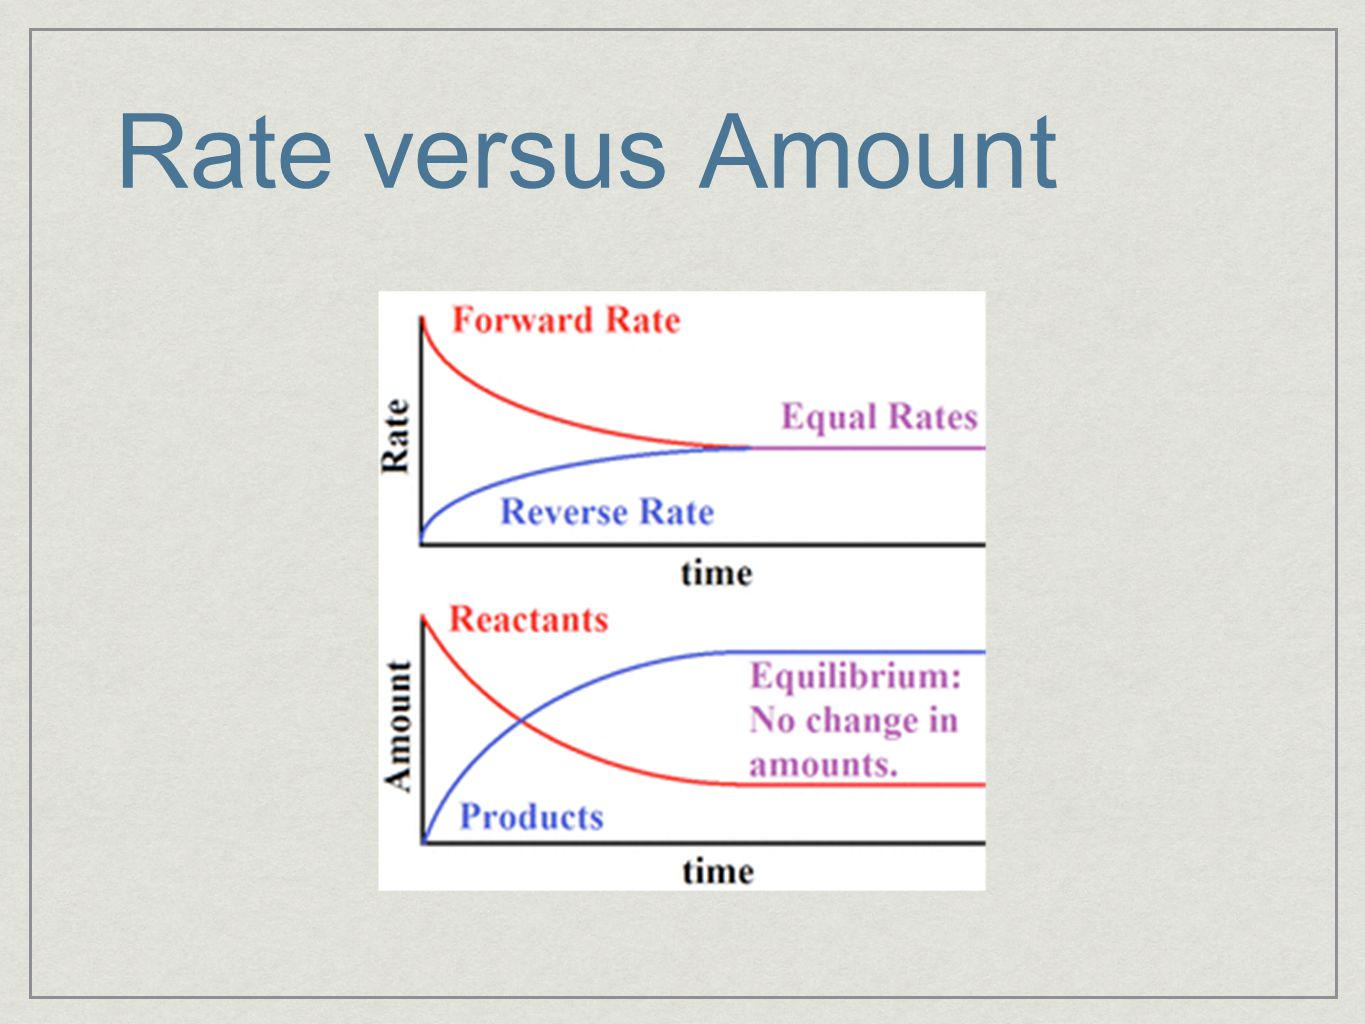 Rate versus Amount